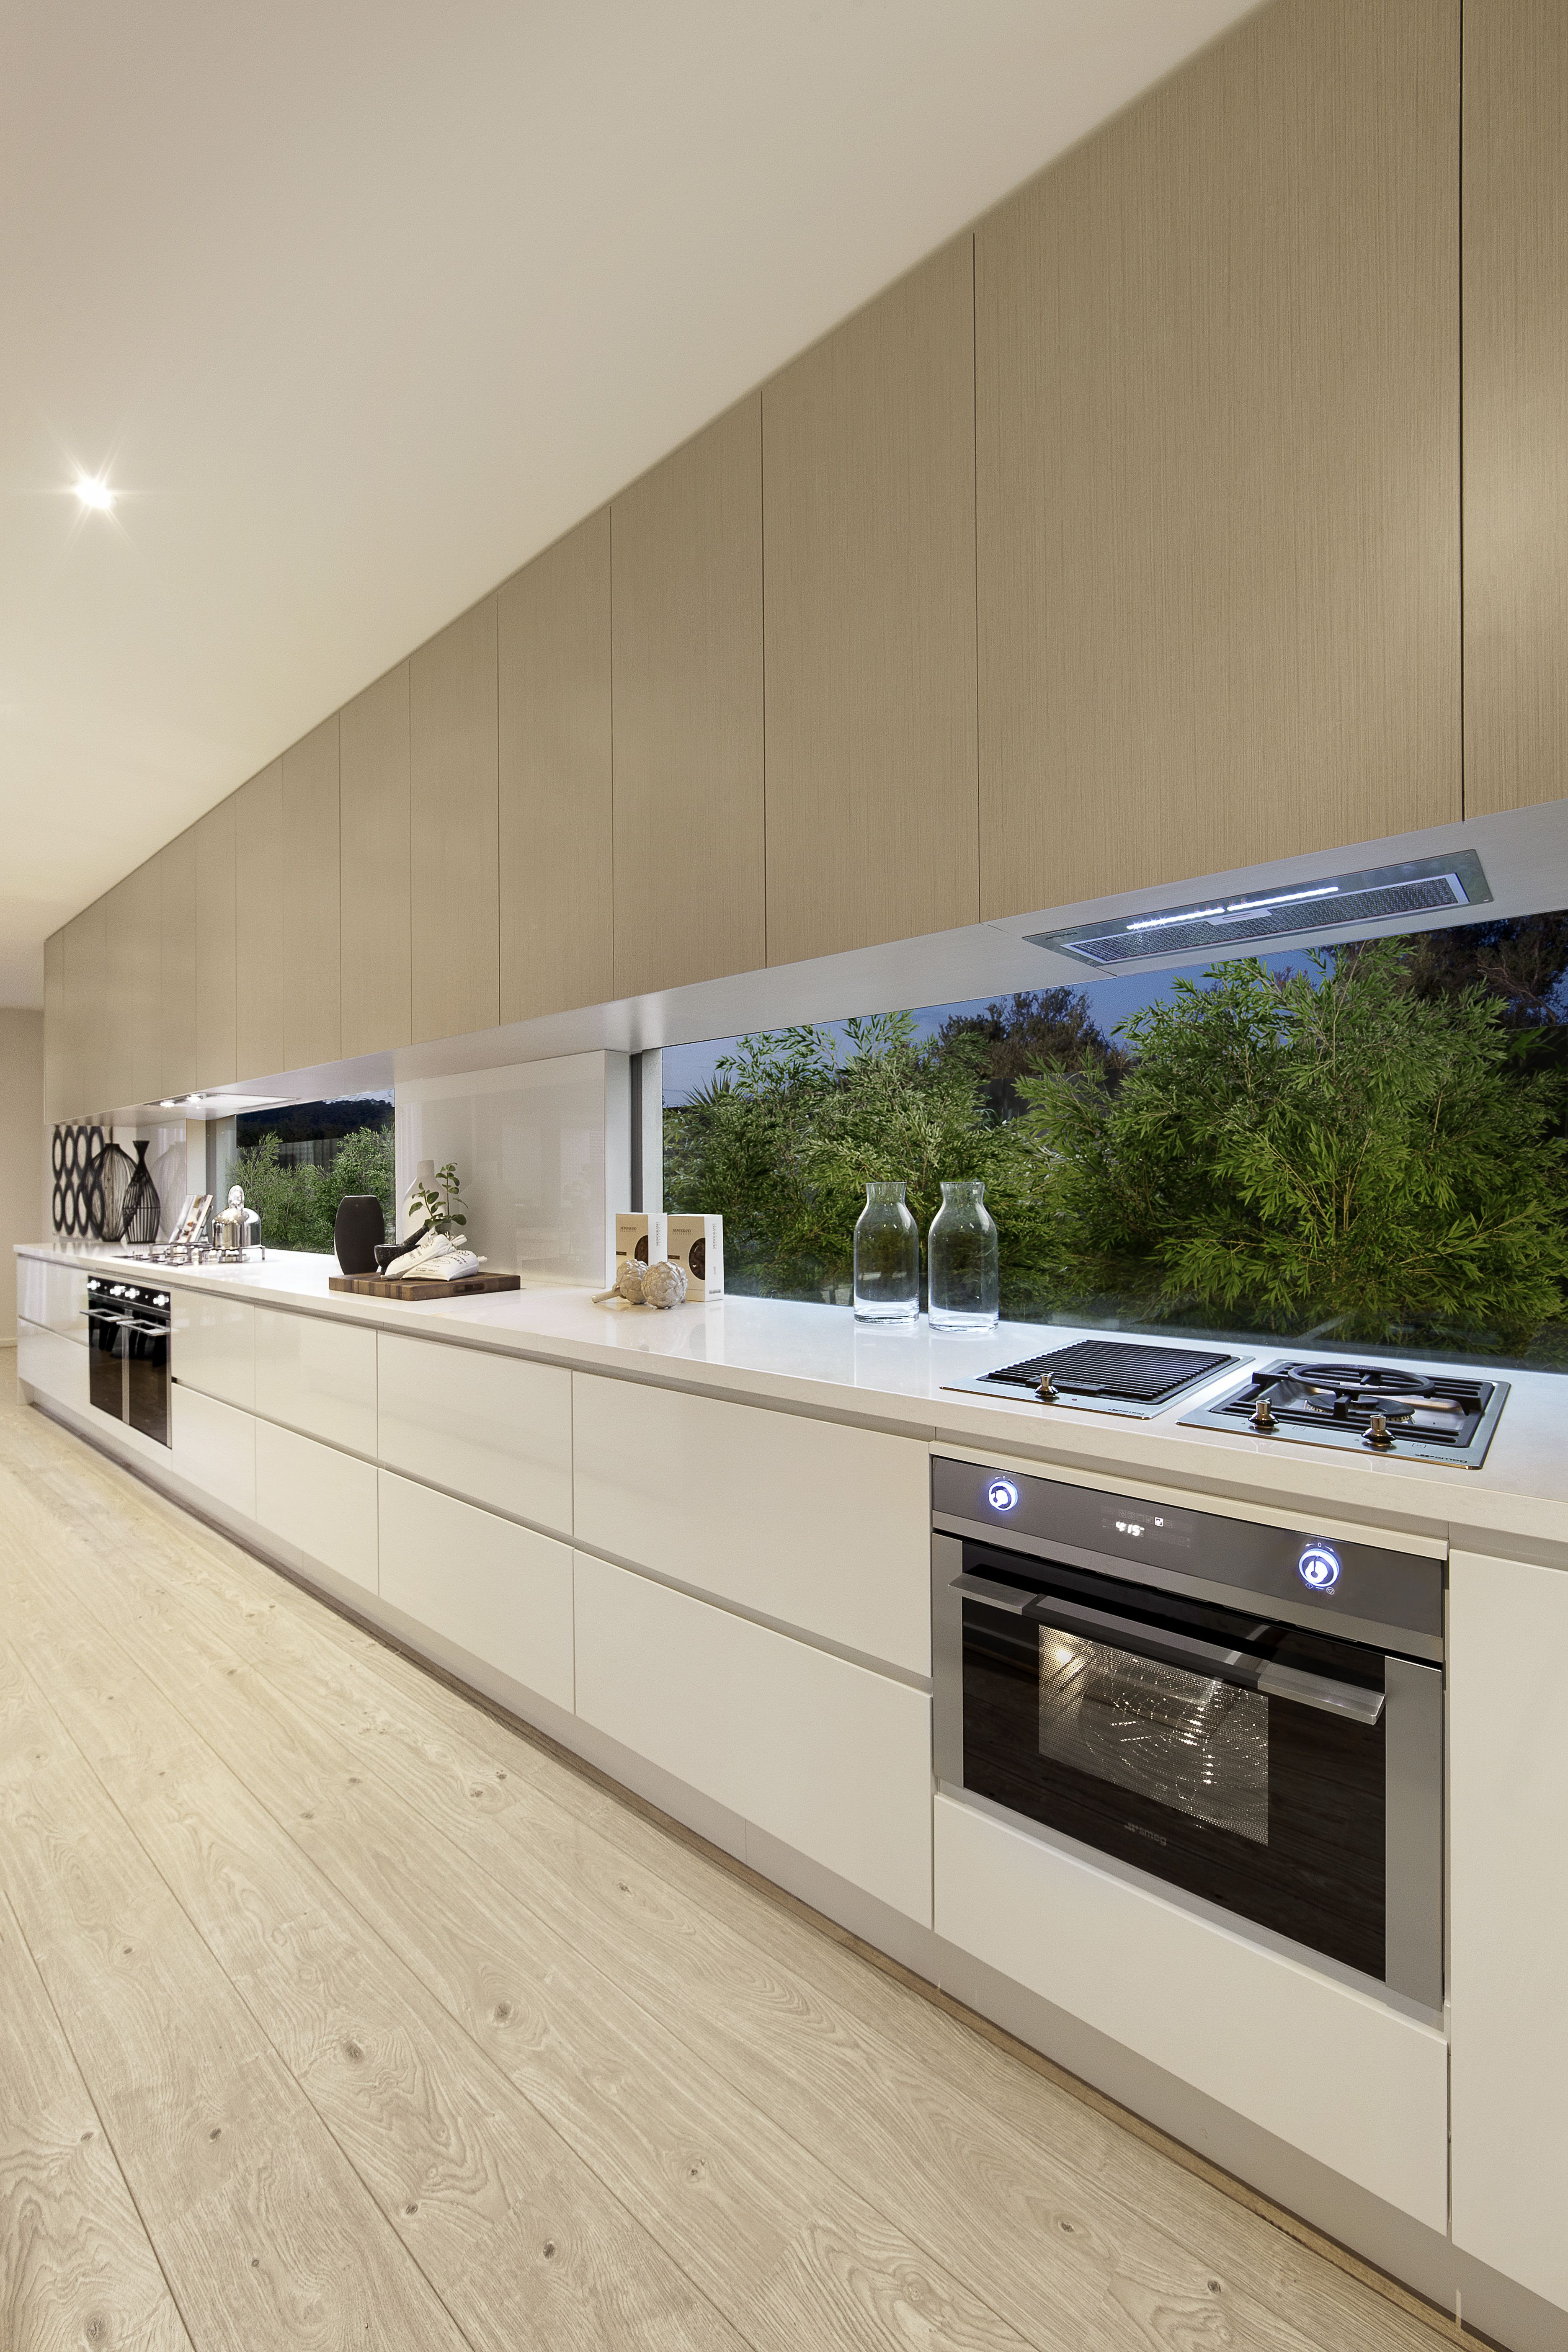 This Flawless Kitchen Embraces Natural Light Through The